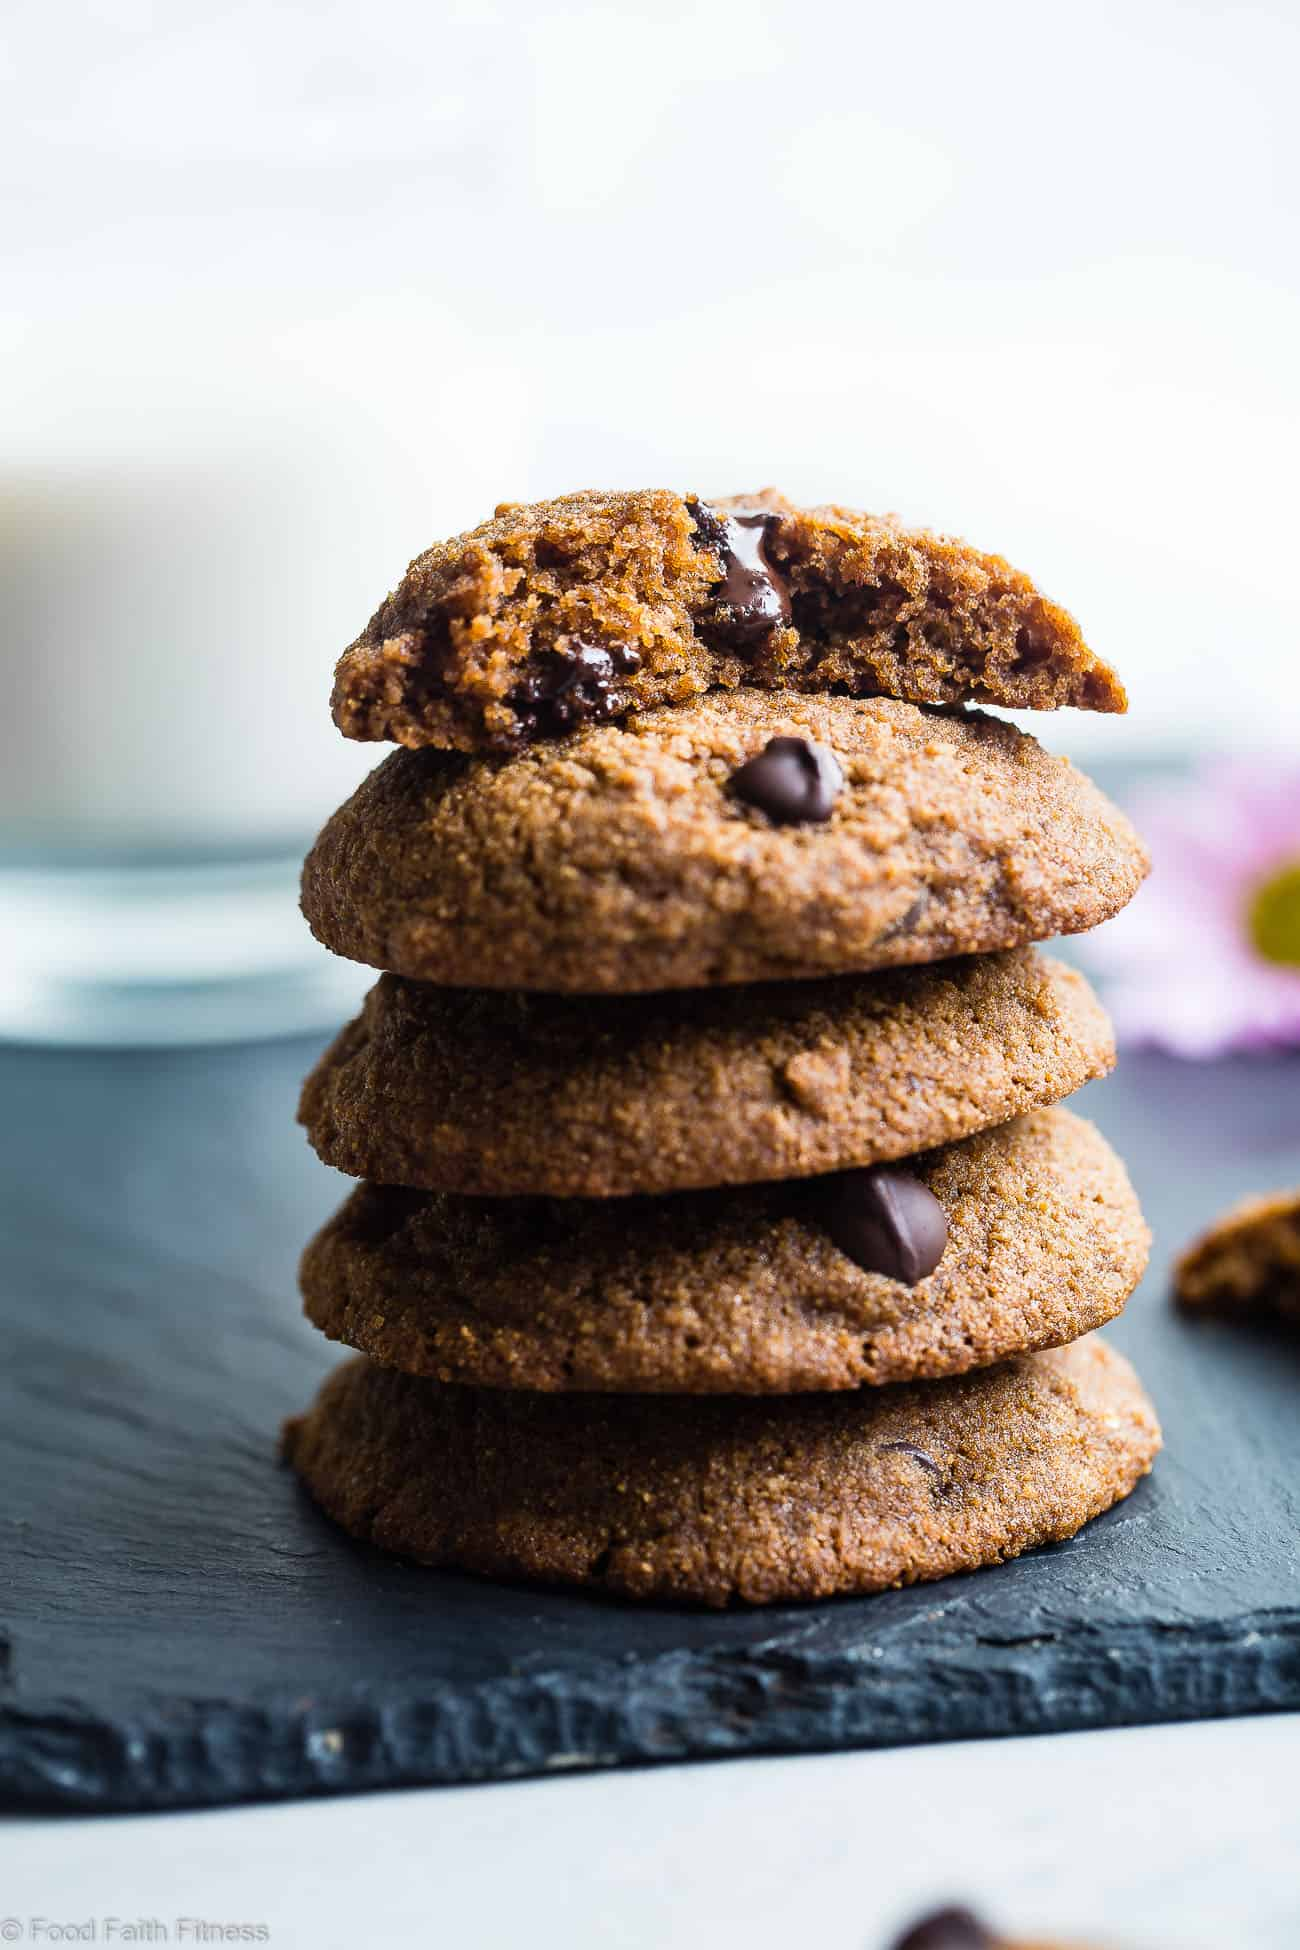 The Best Paleo Chocolate Chip Cookies -These EASYpaleo friendly cookies are buttery, soft, chewy and SO rich and chocolaty! You won't believe they are gluten, grain and refined sugar free! | #Foodfaithfitness | #Paleo #Cookies #Glutenfree #ChocolateChip #GrainFree